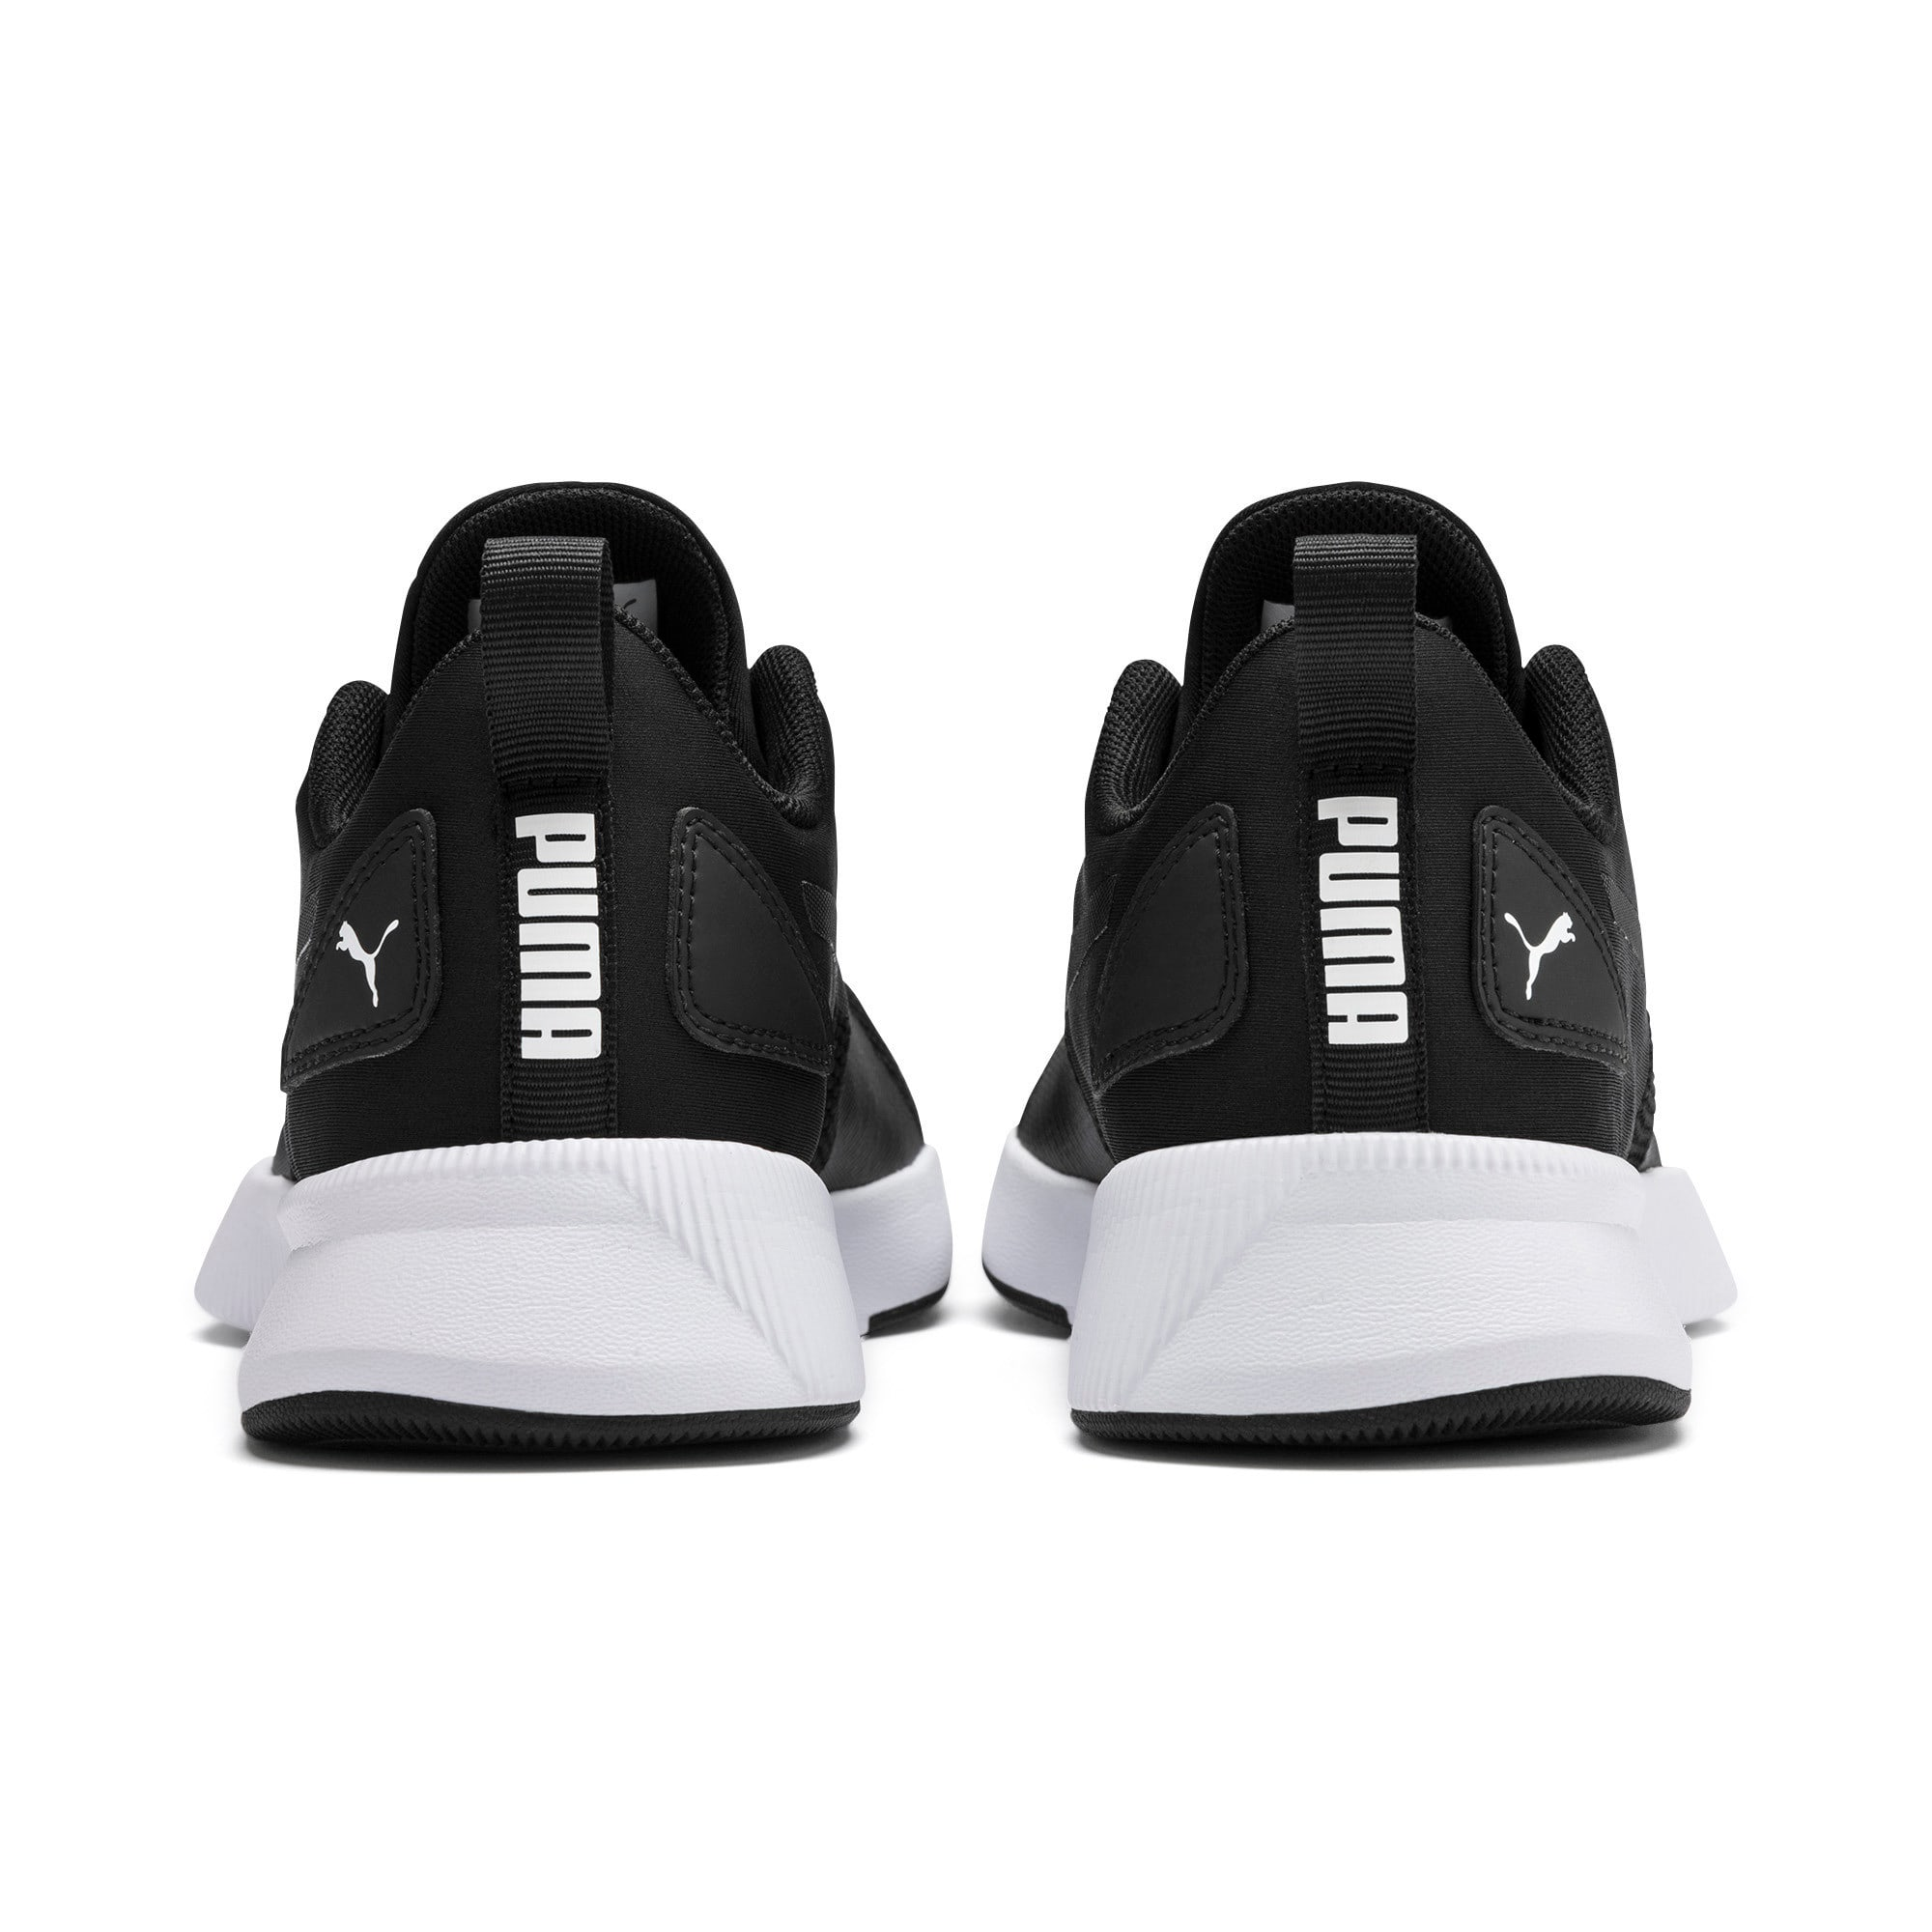 Thumbnail 3 of Flyer Runner Youth Trainers, Puma Black-Puma White, medium-IND